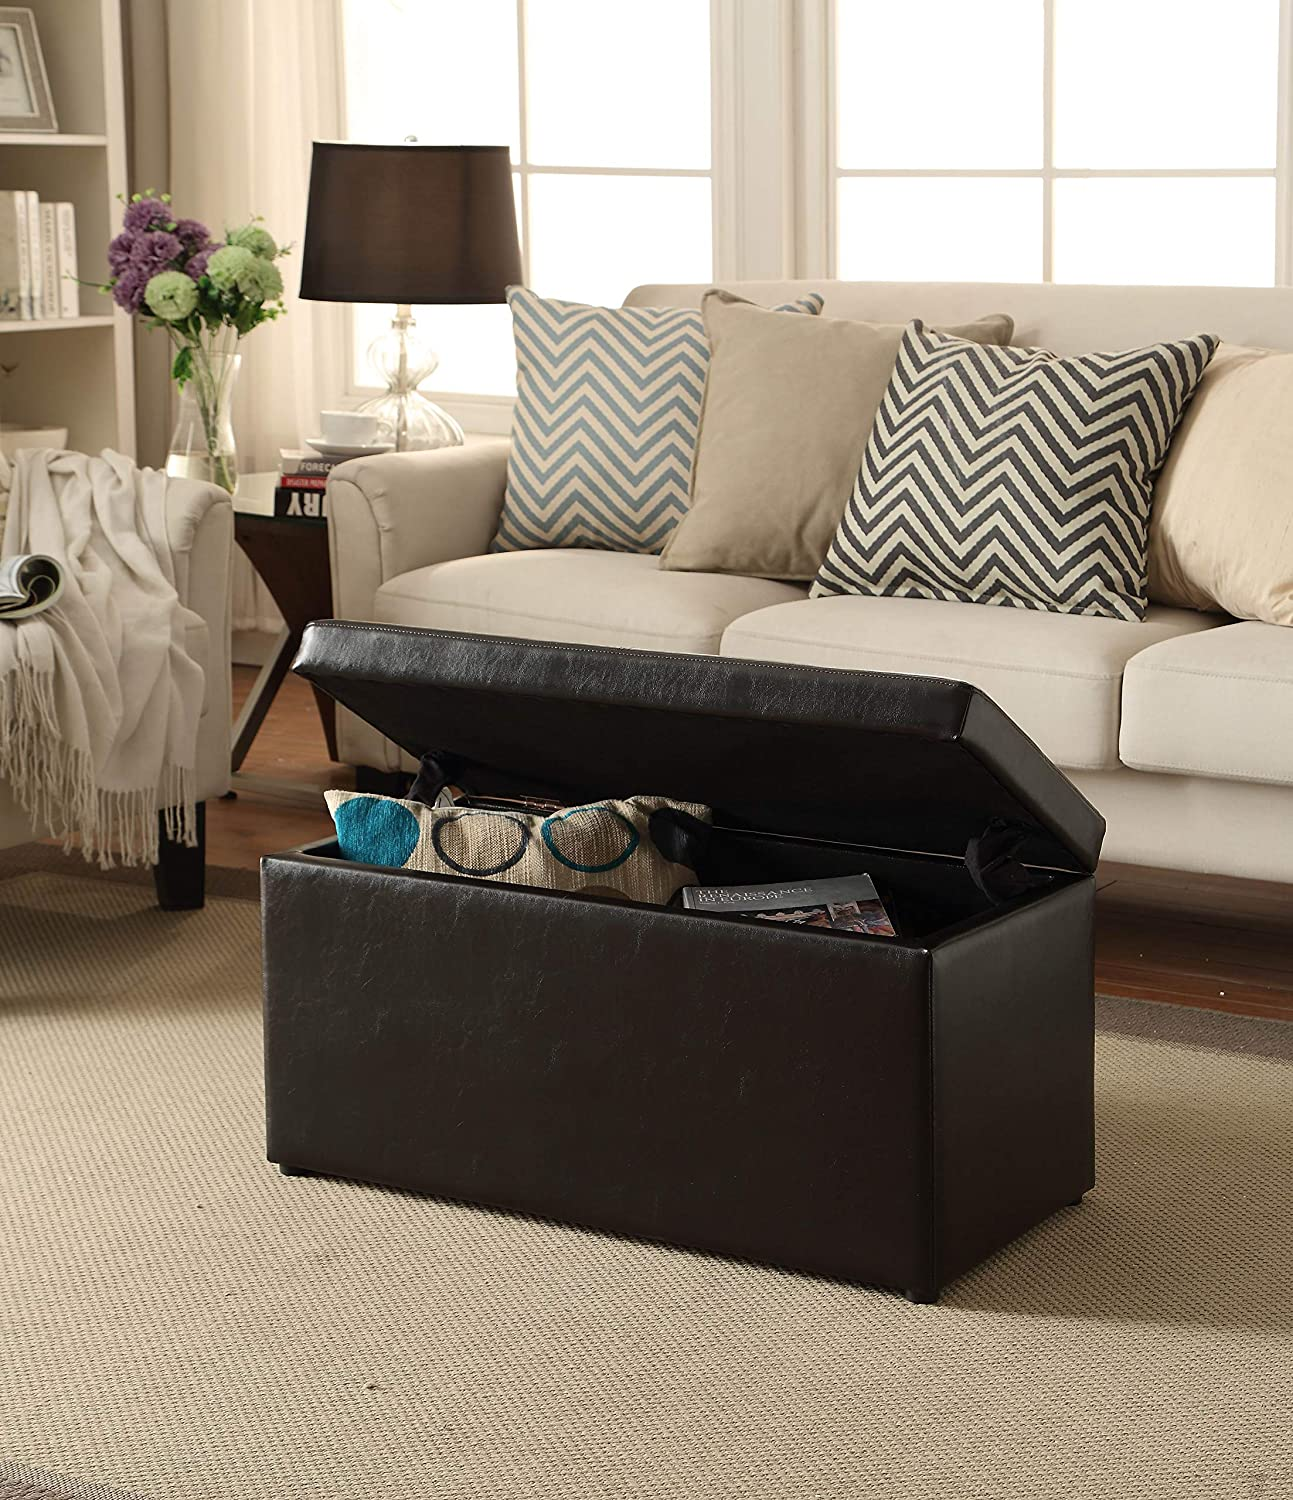 Better Homes and Gardens 30 Inch Hinged Storage Ottoman (Brown, 30-inch)